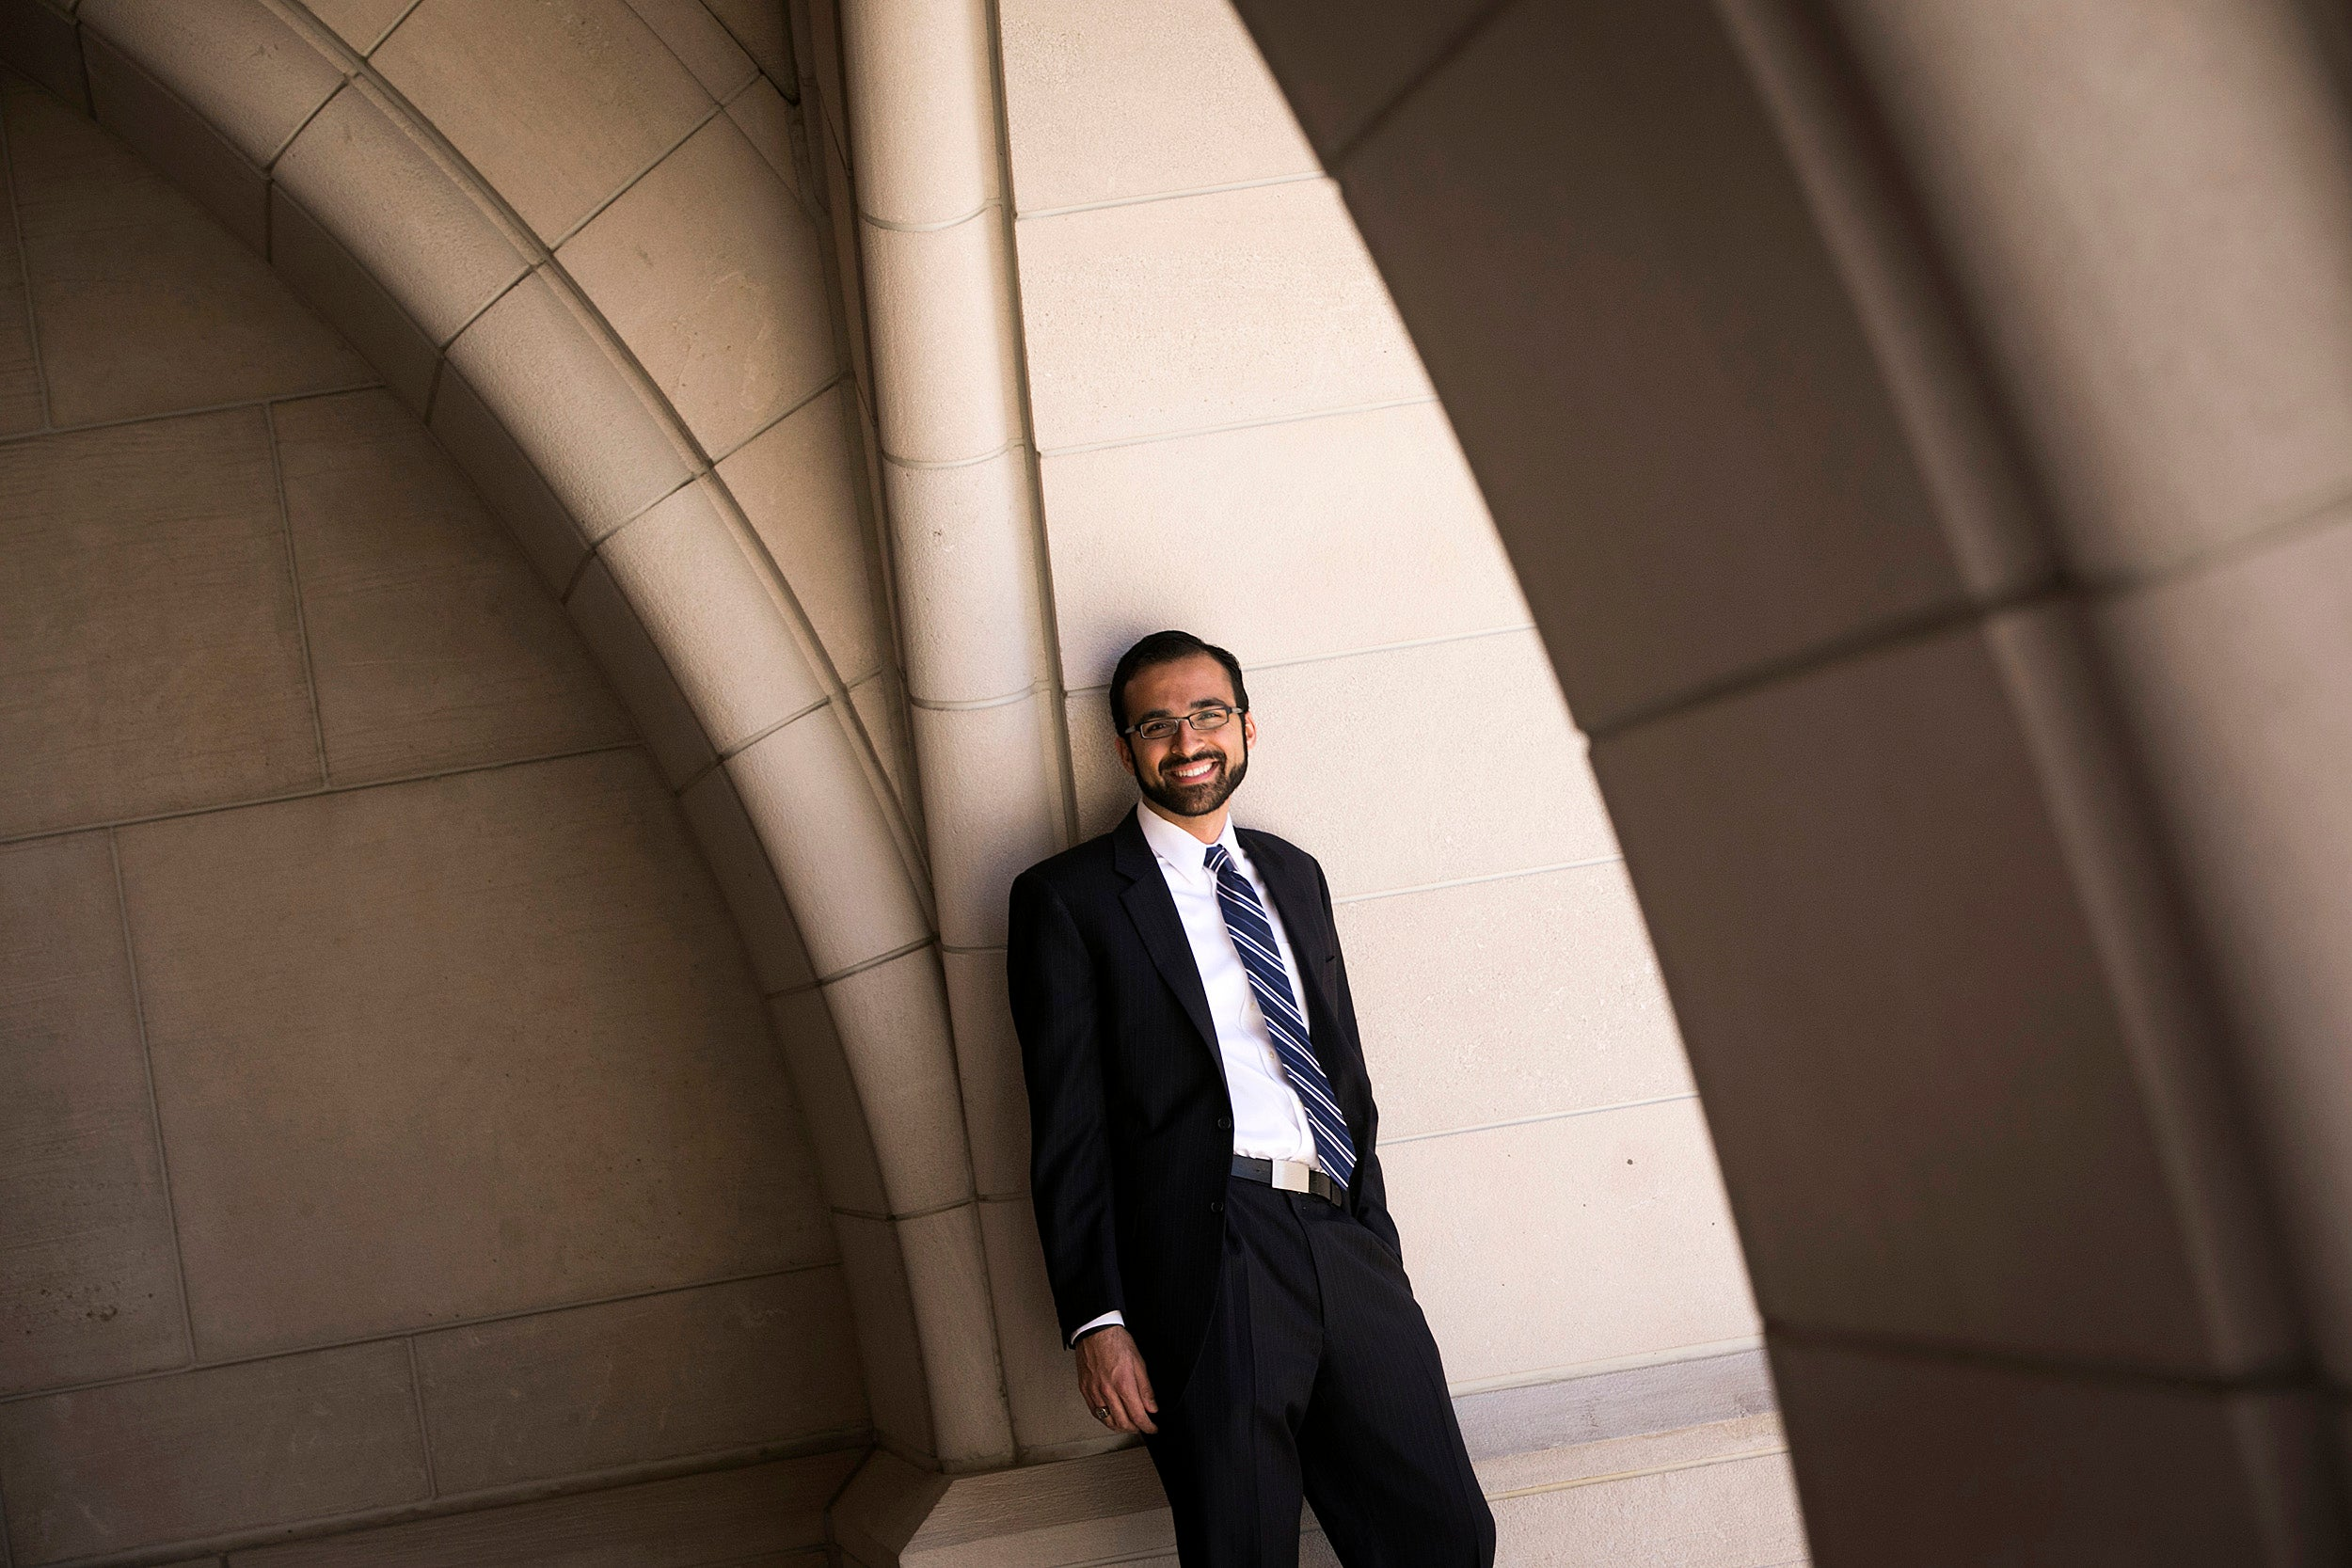 """""""The responsibility of privilege is to pay it forward,"""" says Law School grad Raj Salhotra, who launched a program to provide mentors to help underserved high school students find path to college."""